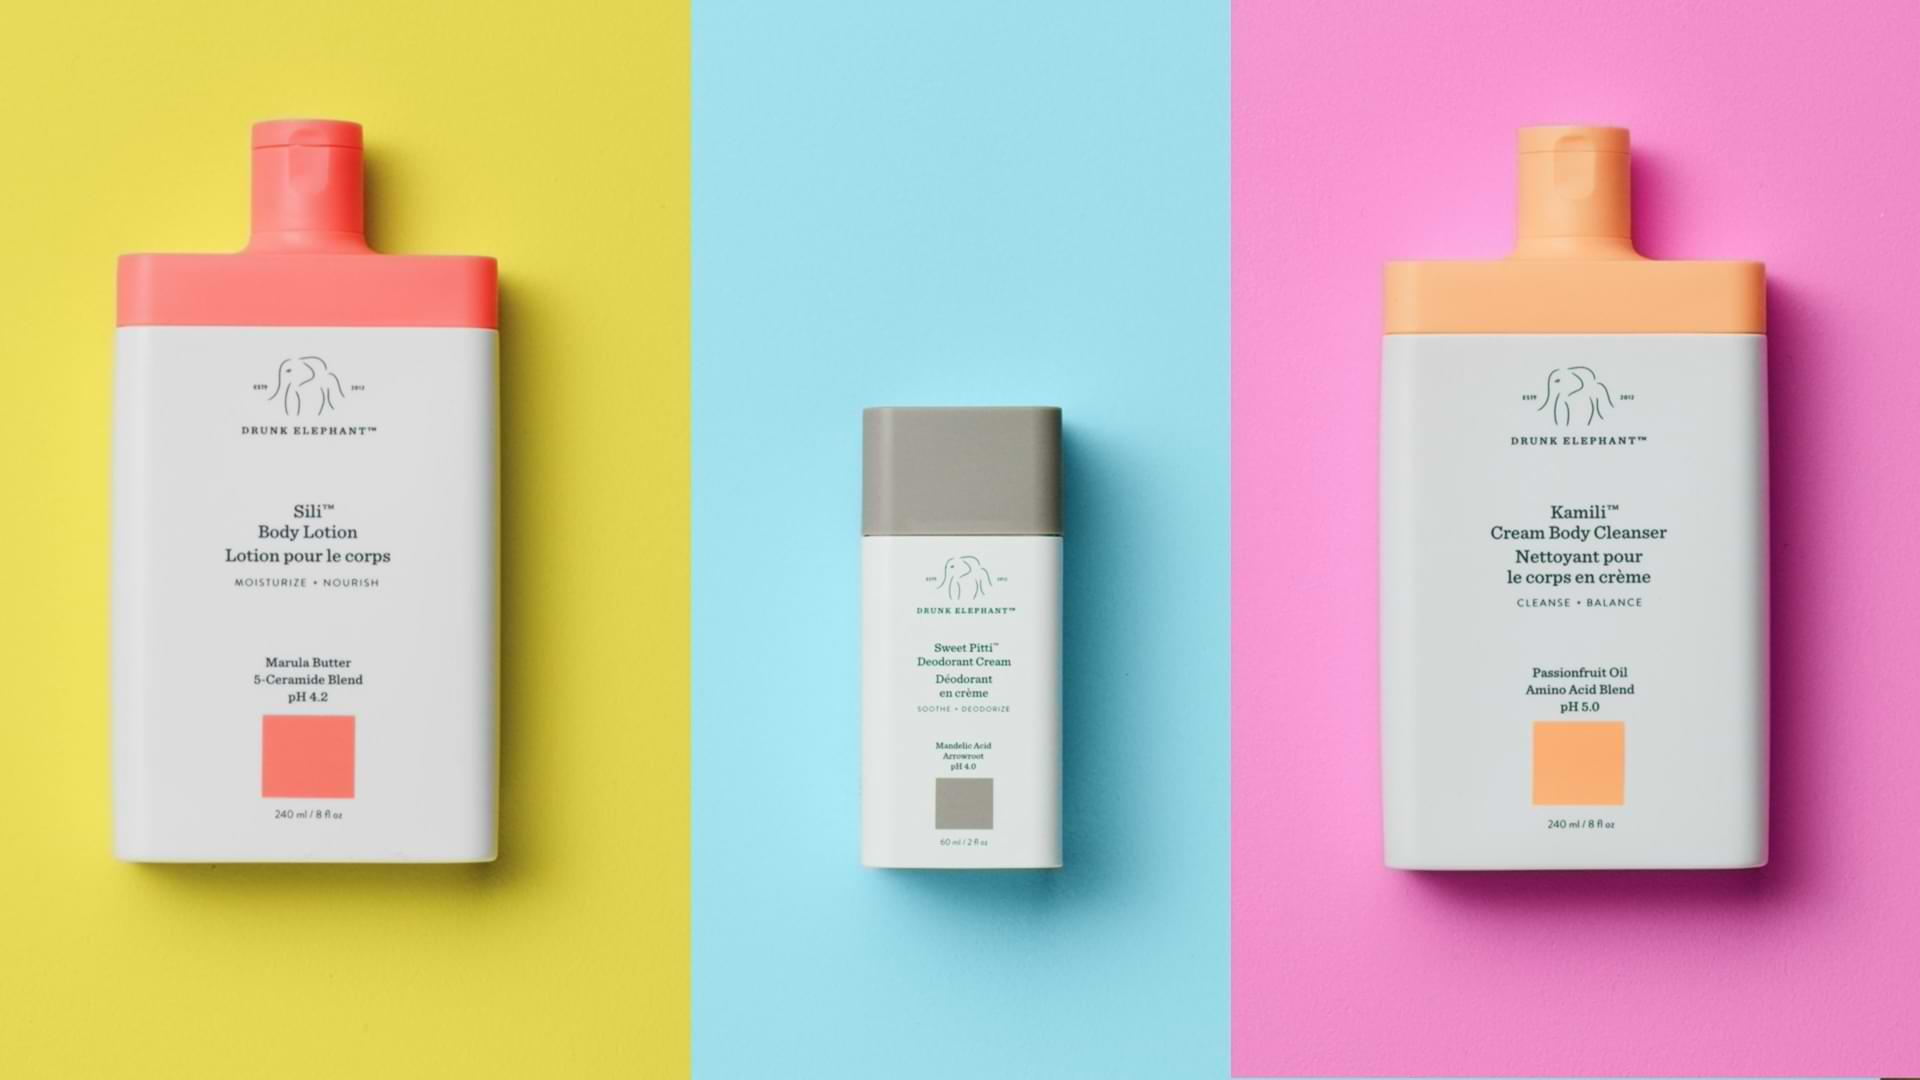 video introducing the entire body line at Drunk Elephant, including Sili body lotion